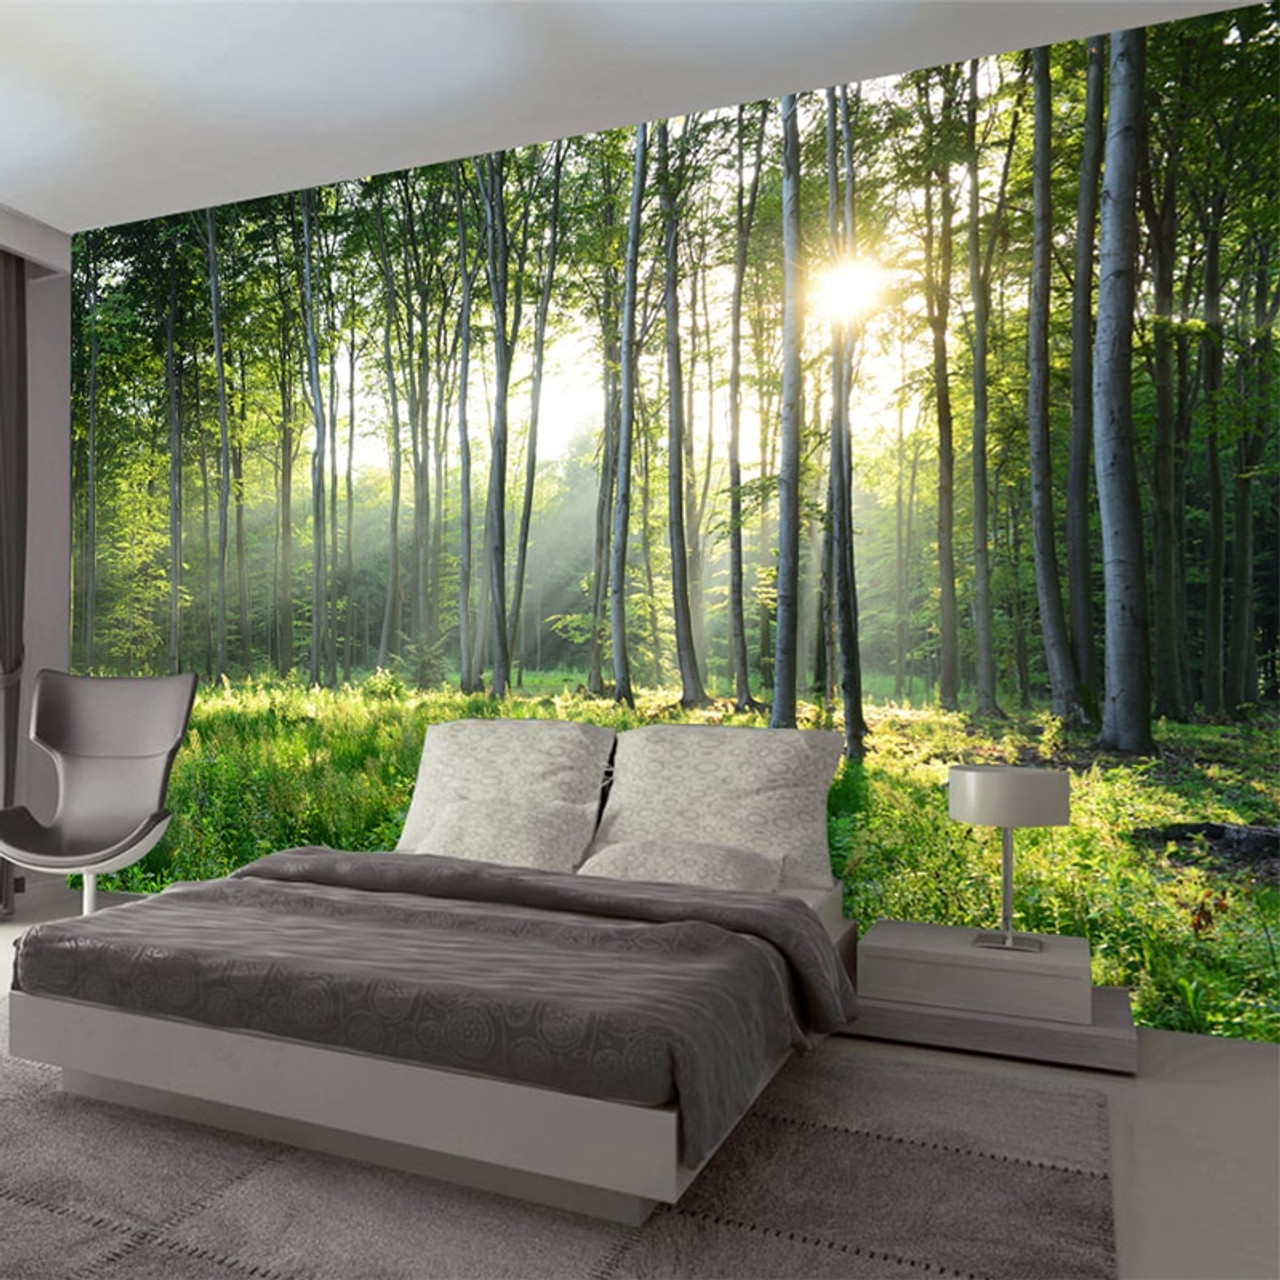 Custom Photo Wallpaper 3D Green Forest Nature Scenery